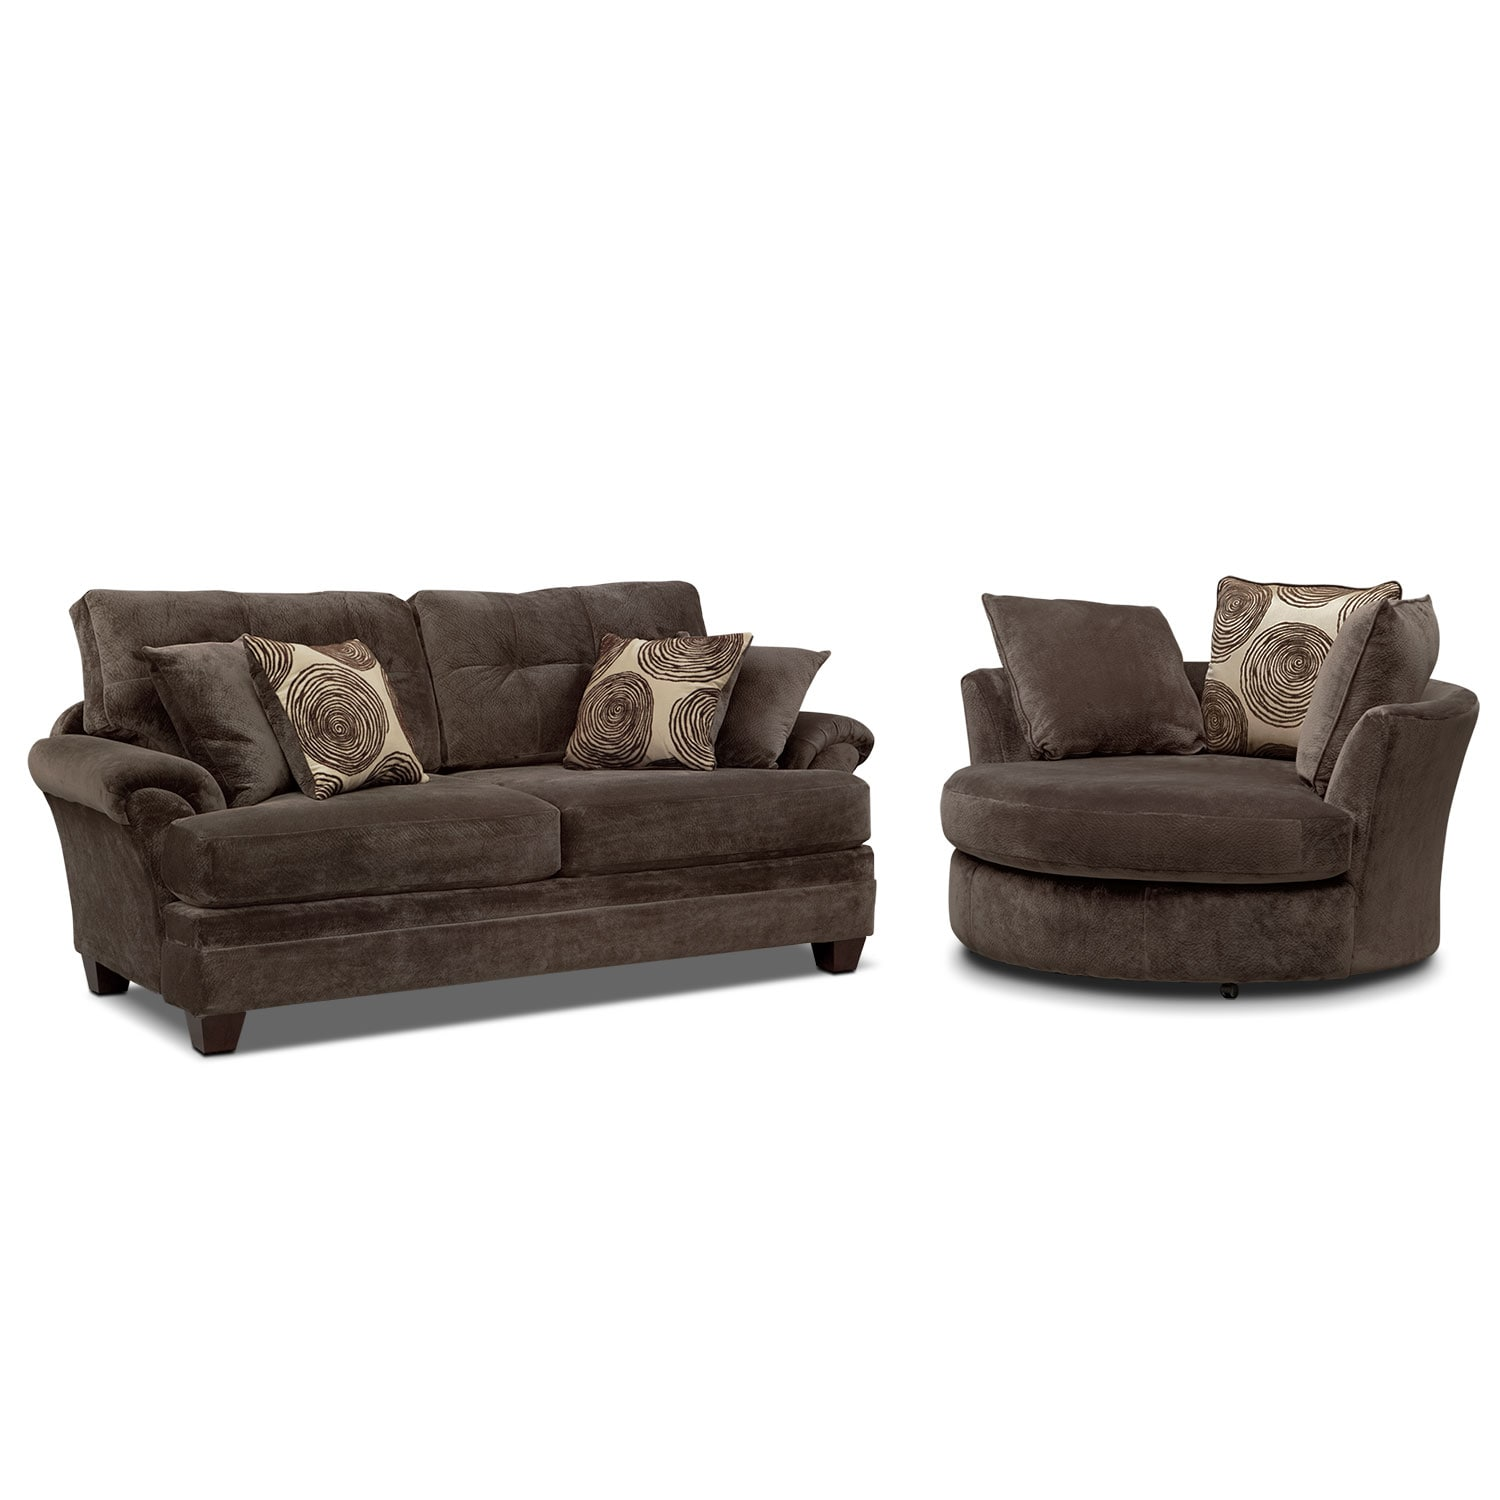 sofa loveseat of medium small with leather chair round black and company design swivel size single